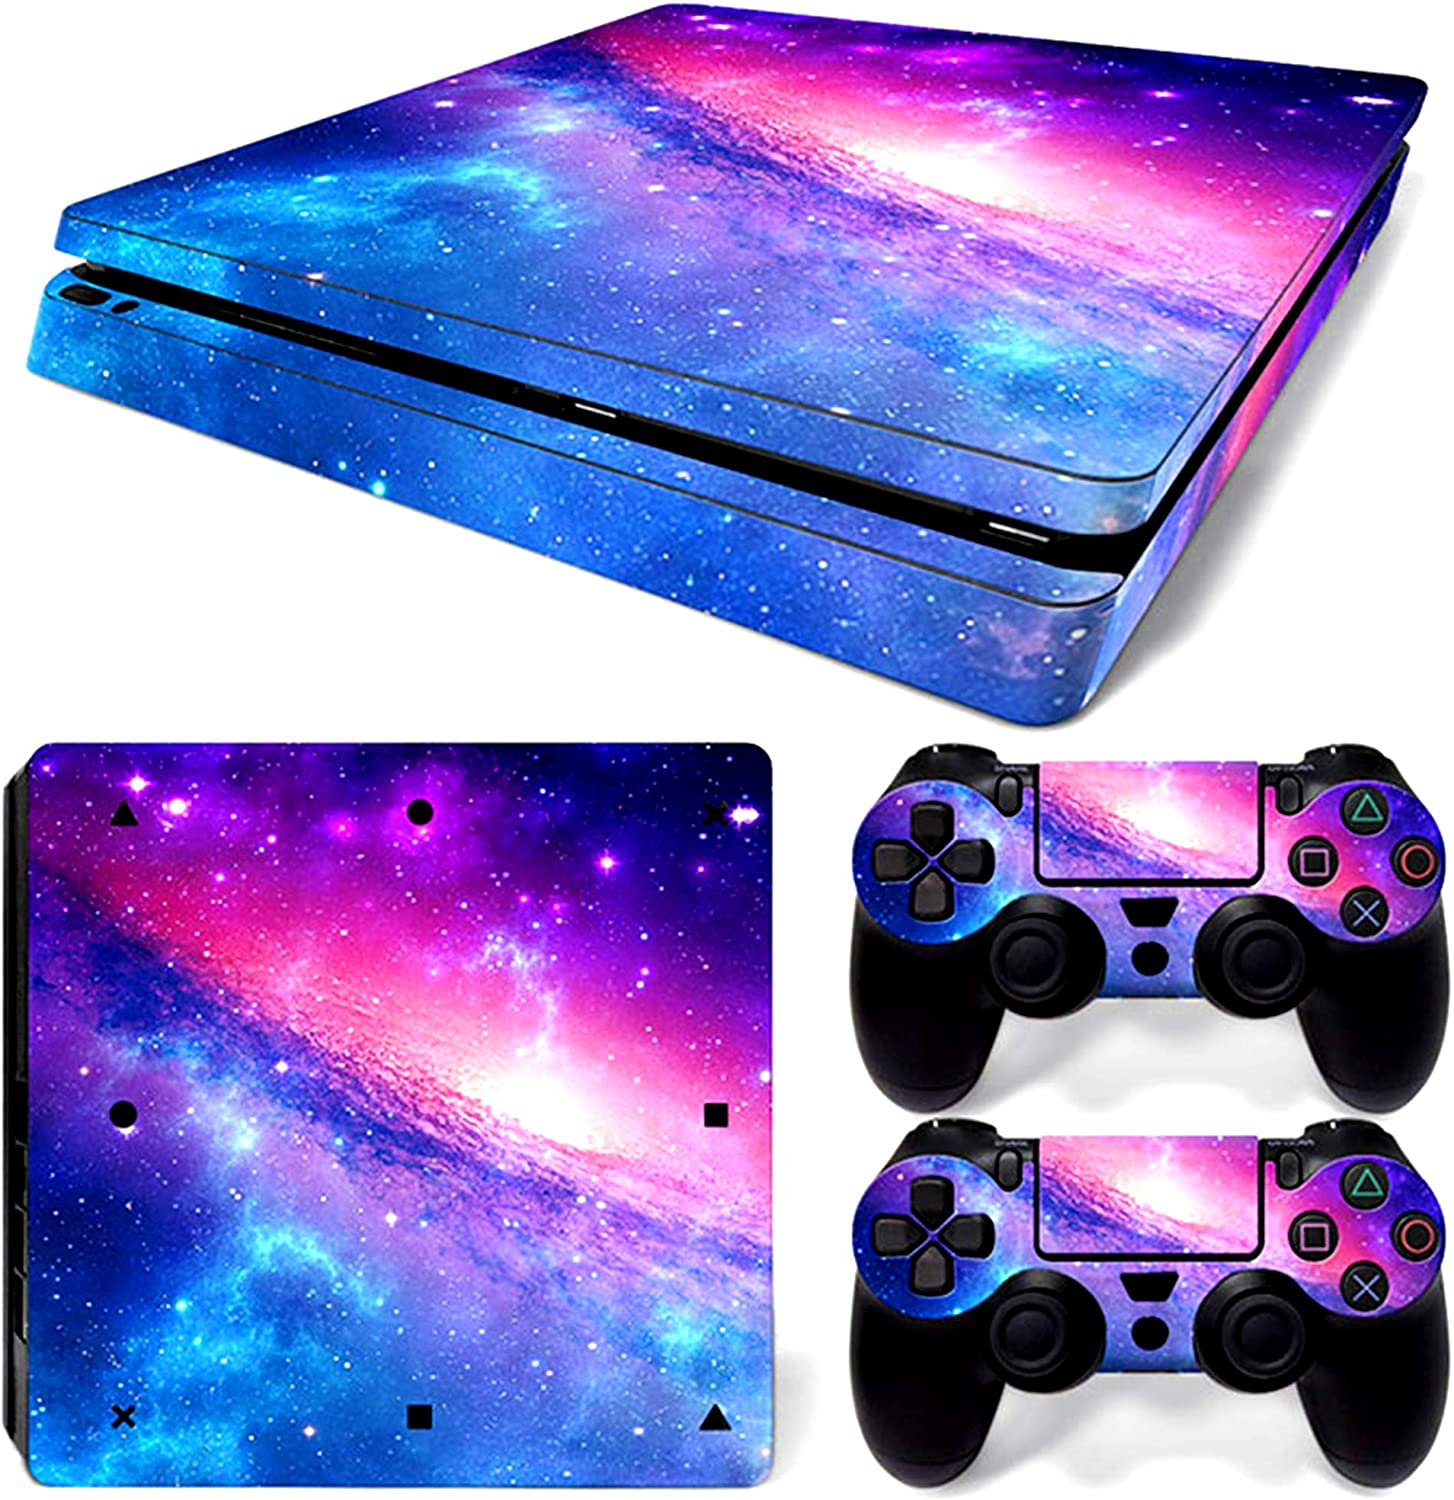 Ps4 Slim Cheap SALE Start Stickers Full Body Vinyl Playstati Cover for Skin Decal Superior